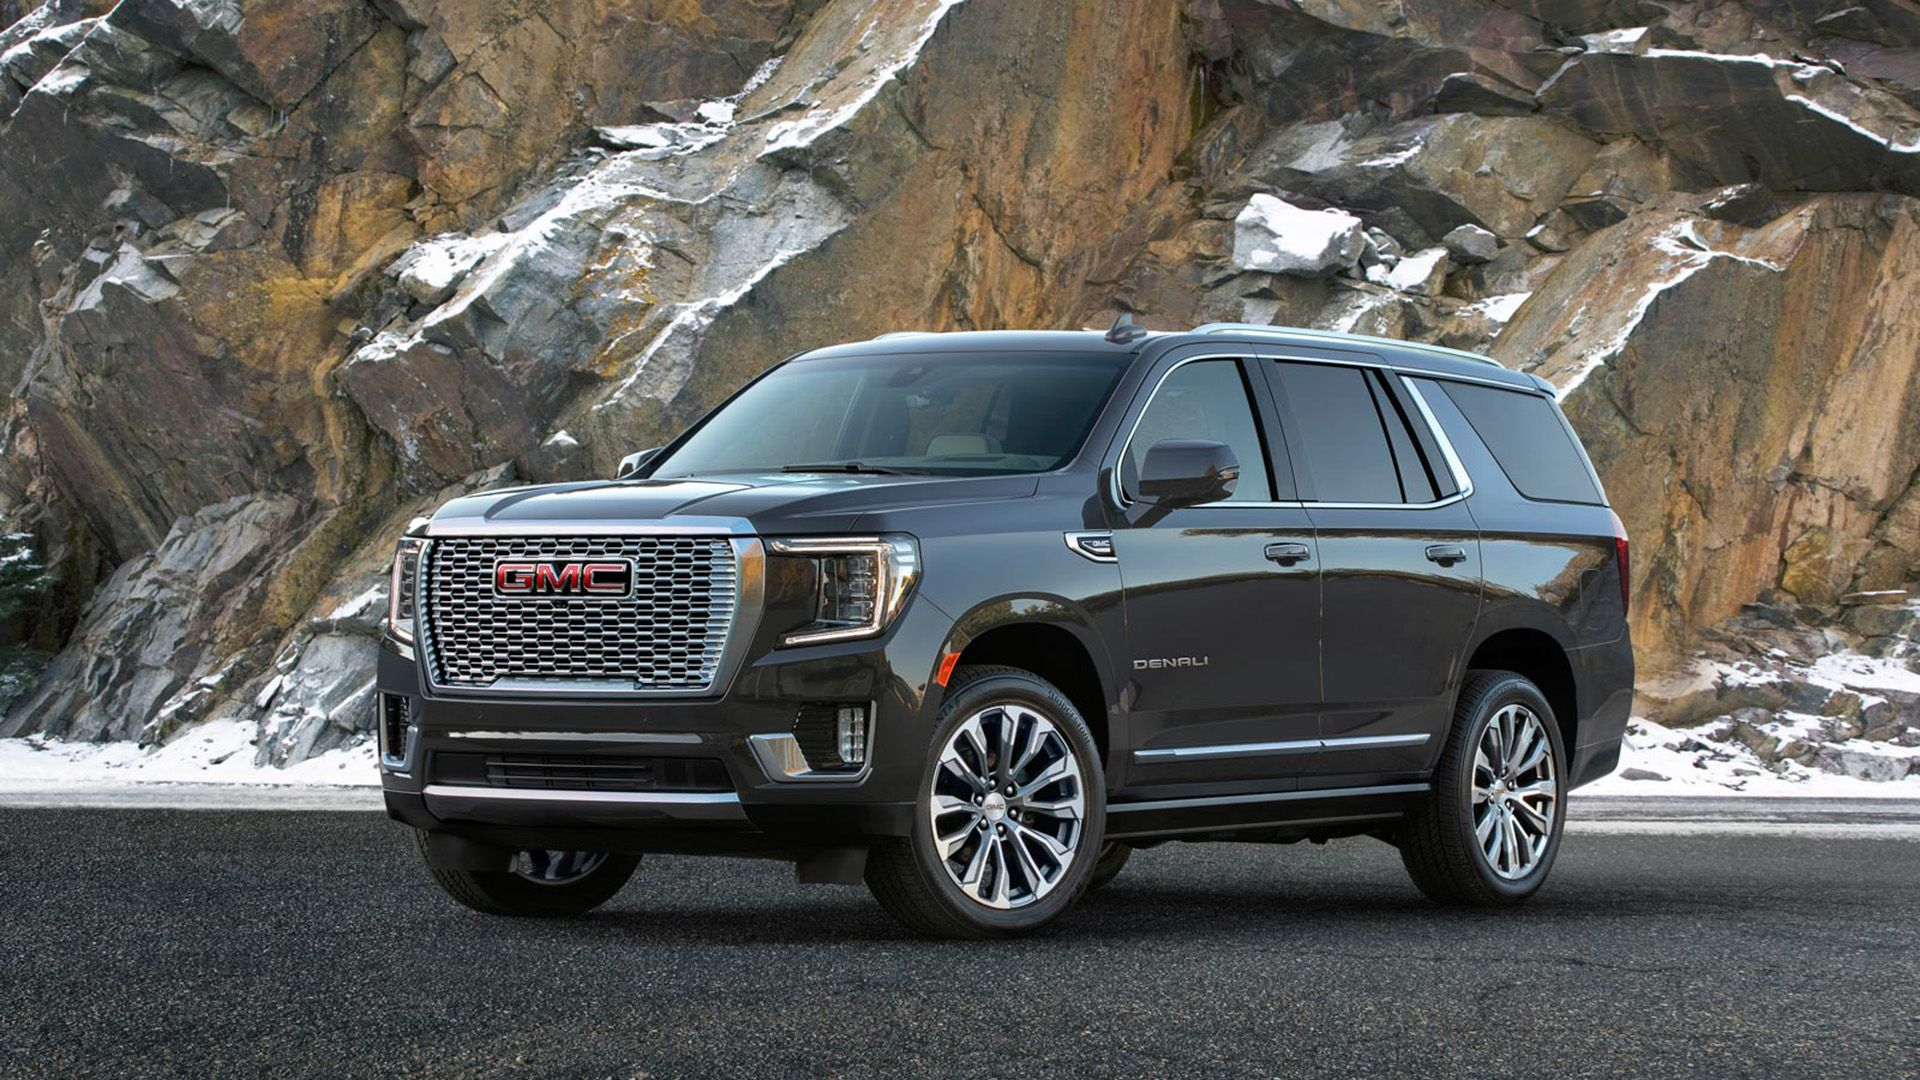 The All New 2021 Gmc Yukon And Yukon Xl Are Here And They Look